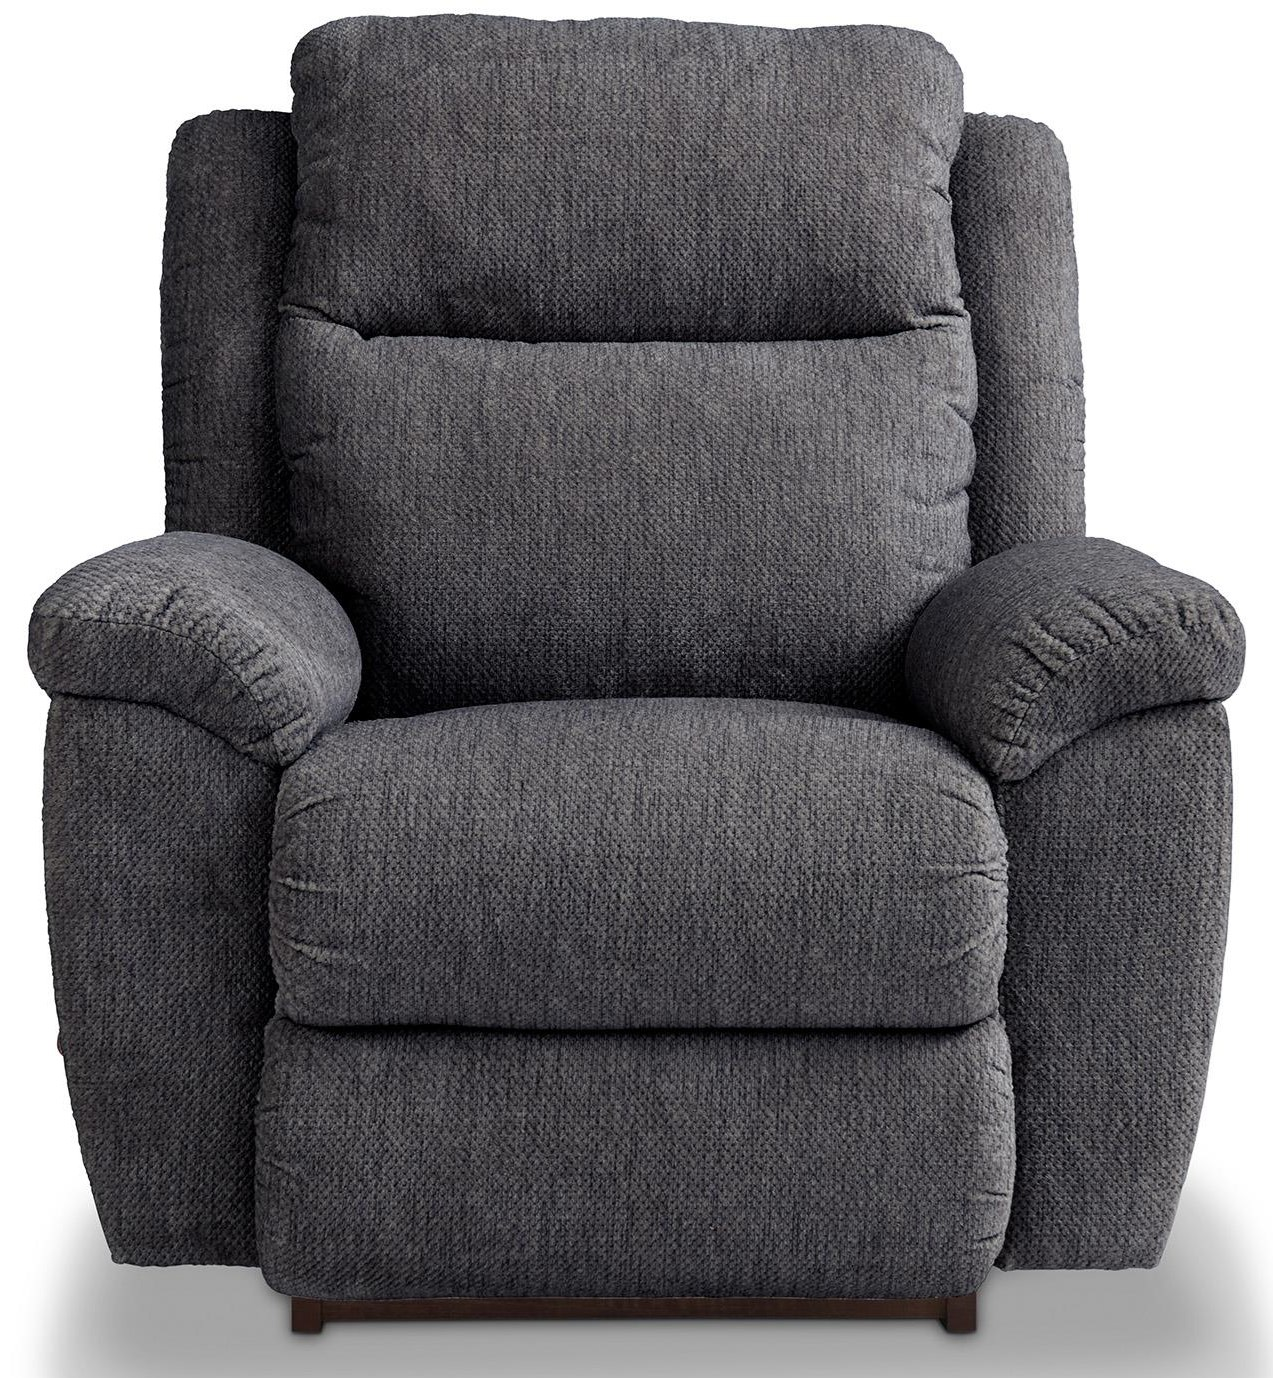 Joel Wall Recliner by La-Z-Boy at Bennett's Furniture and Mattresses